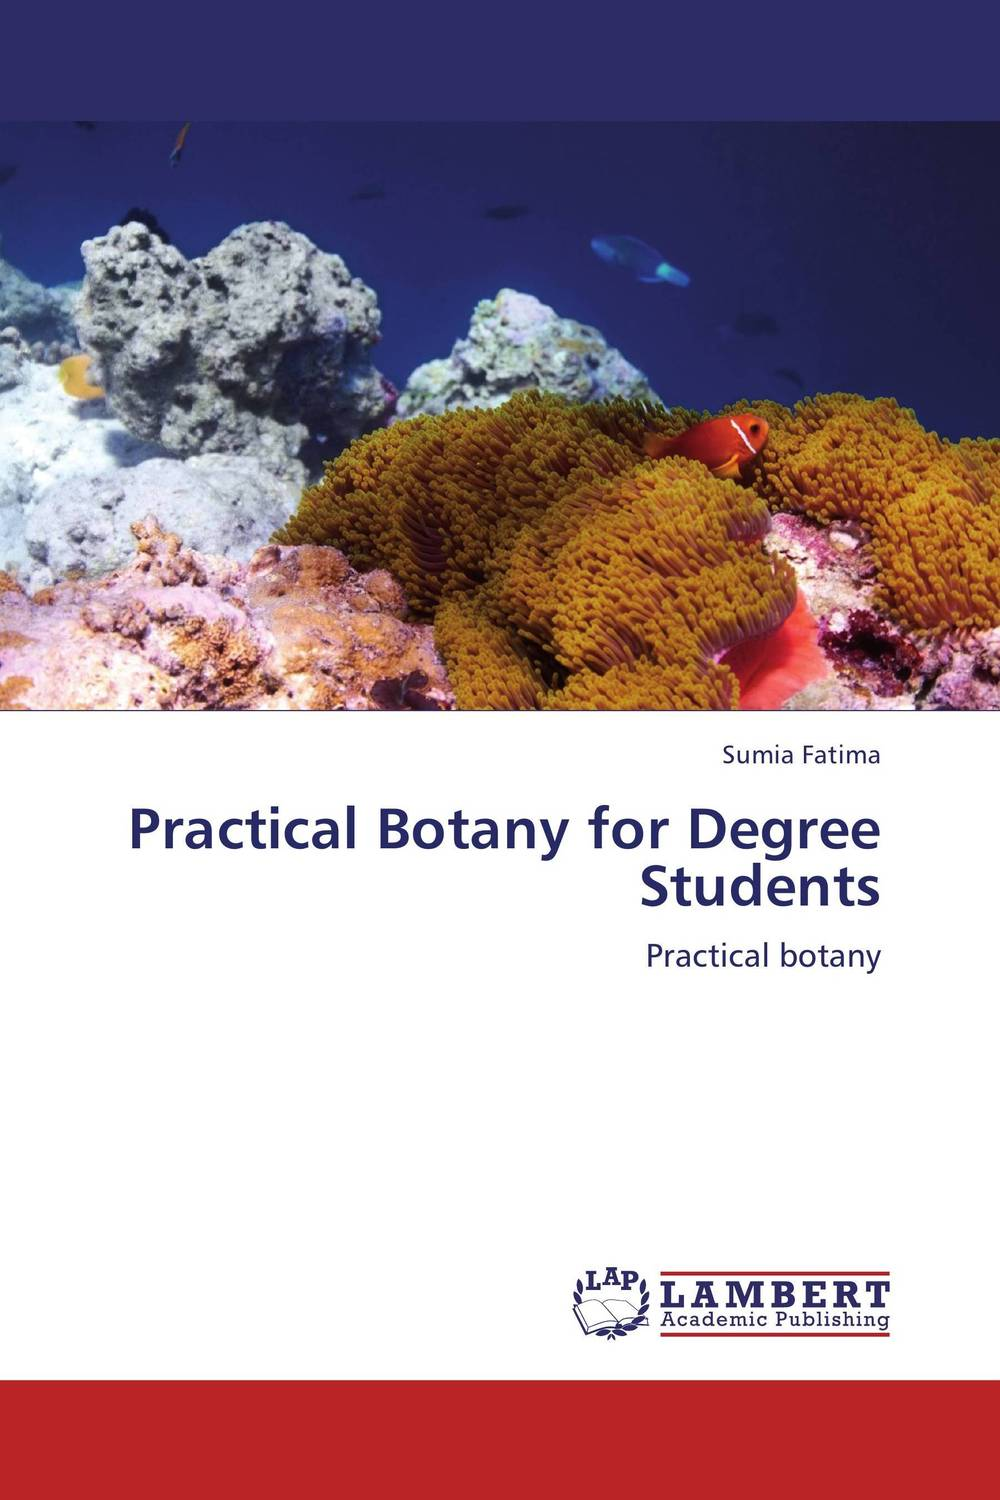 Practical Botany for Degree Students